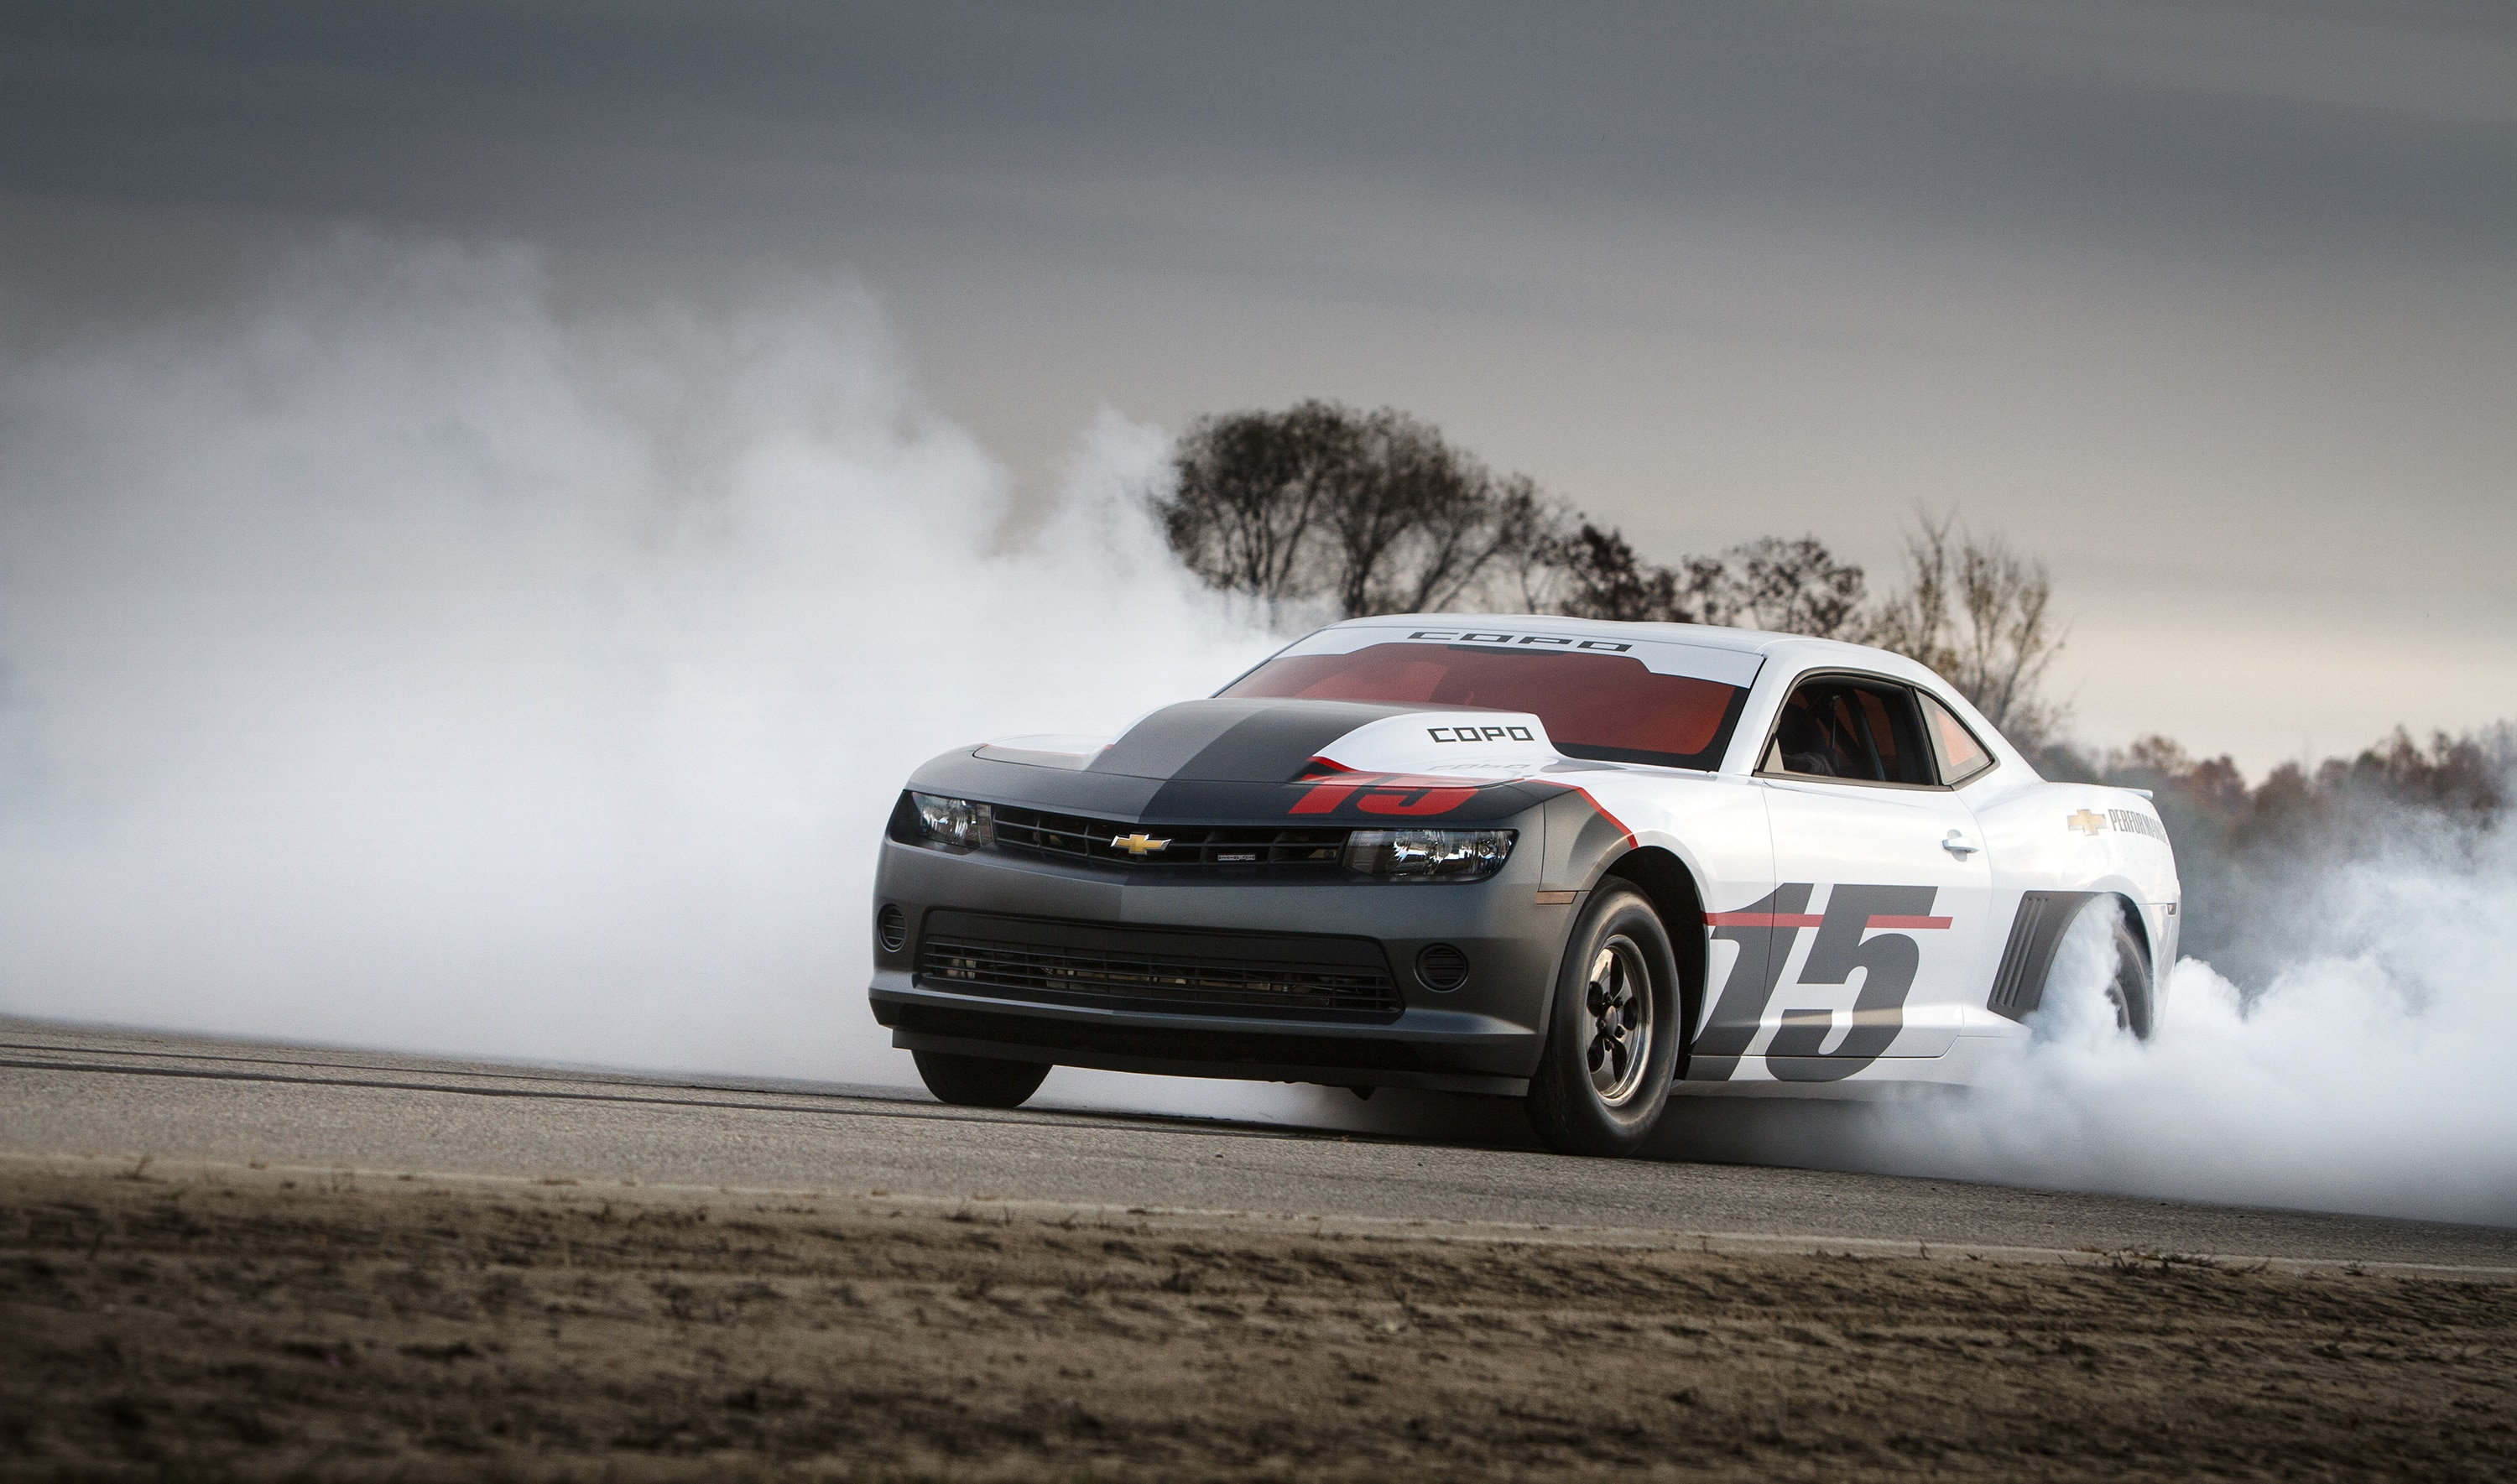 Sale of 2015 COPO Camaro No. 1 Raises $400,000 to Benefit Disabled ...